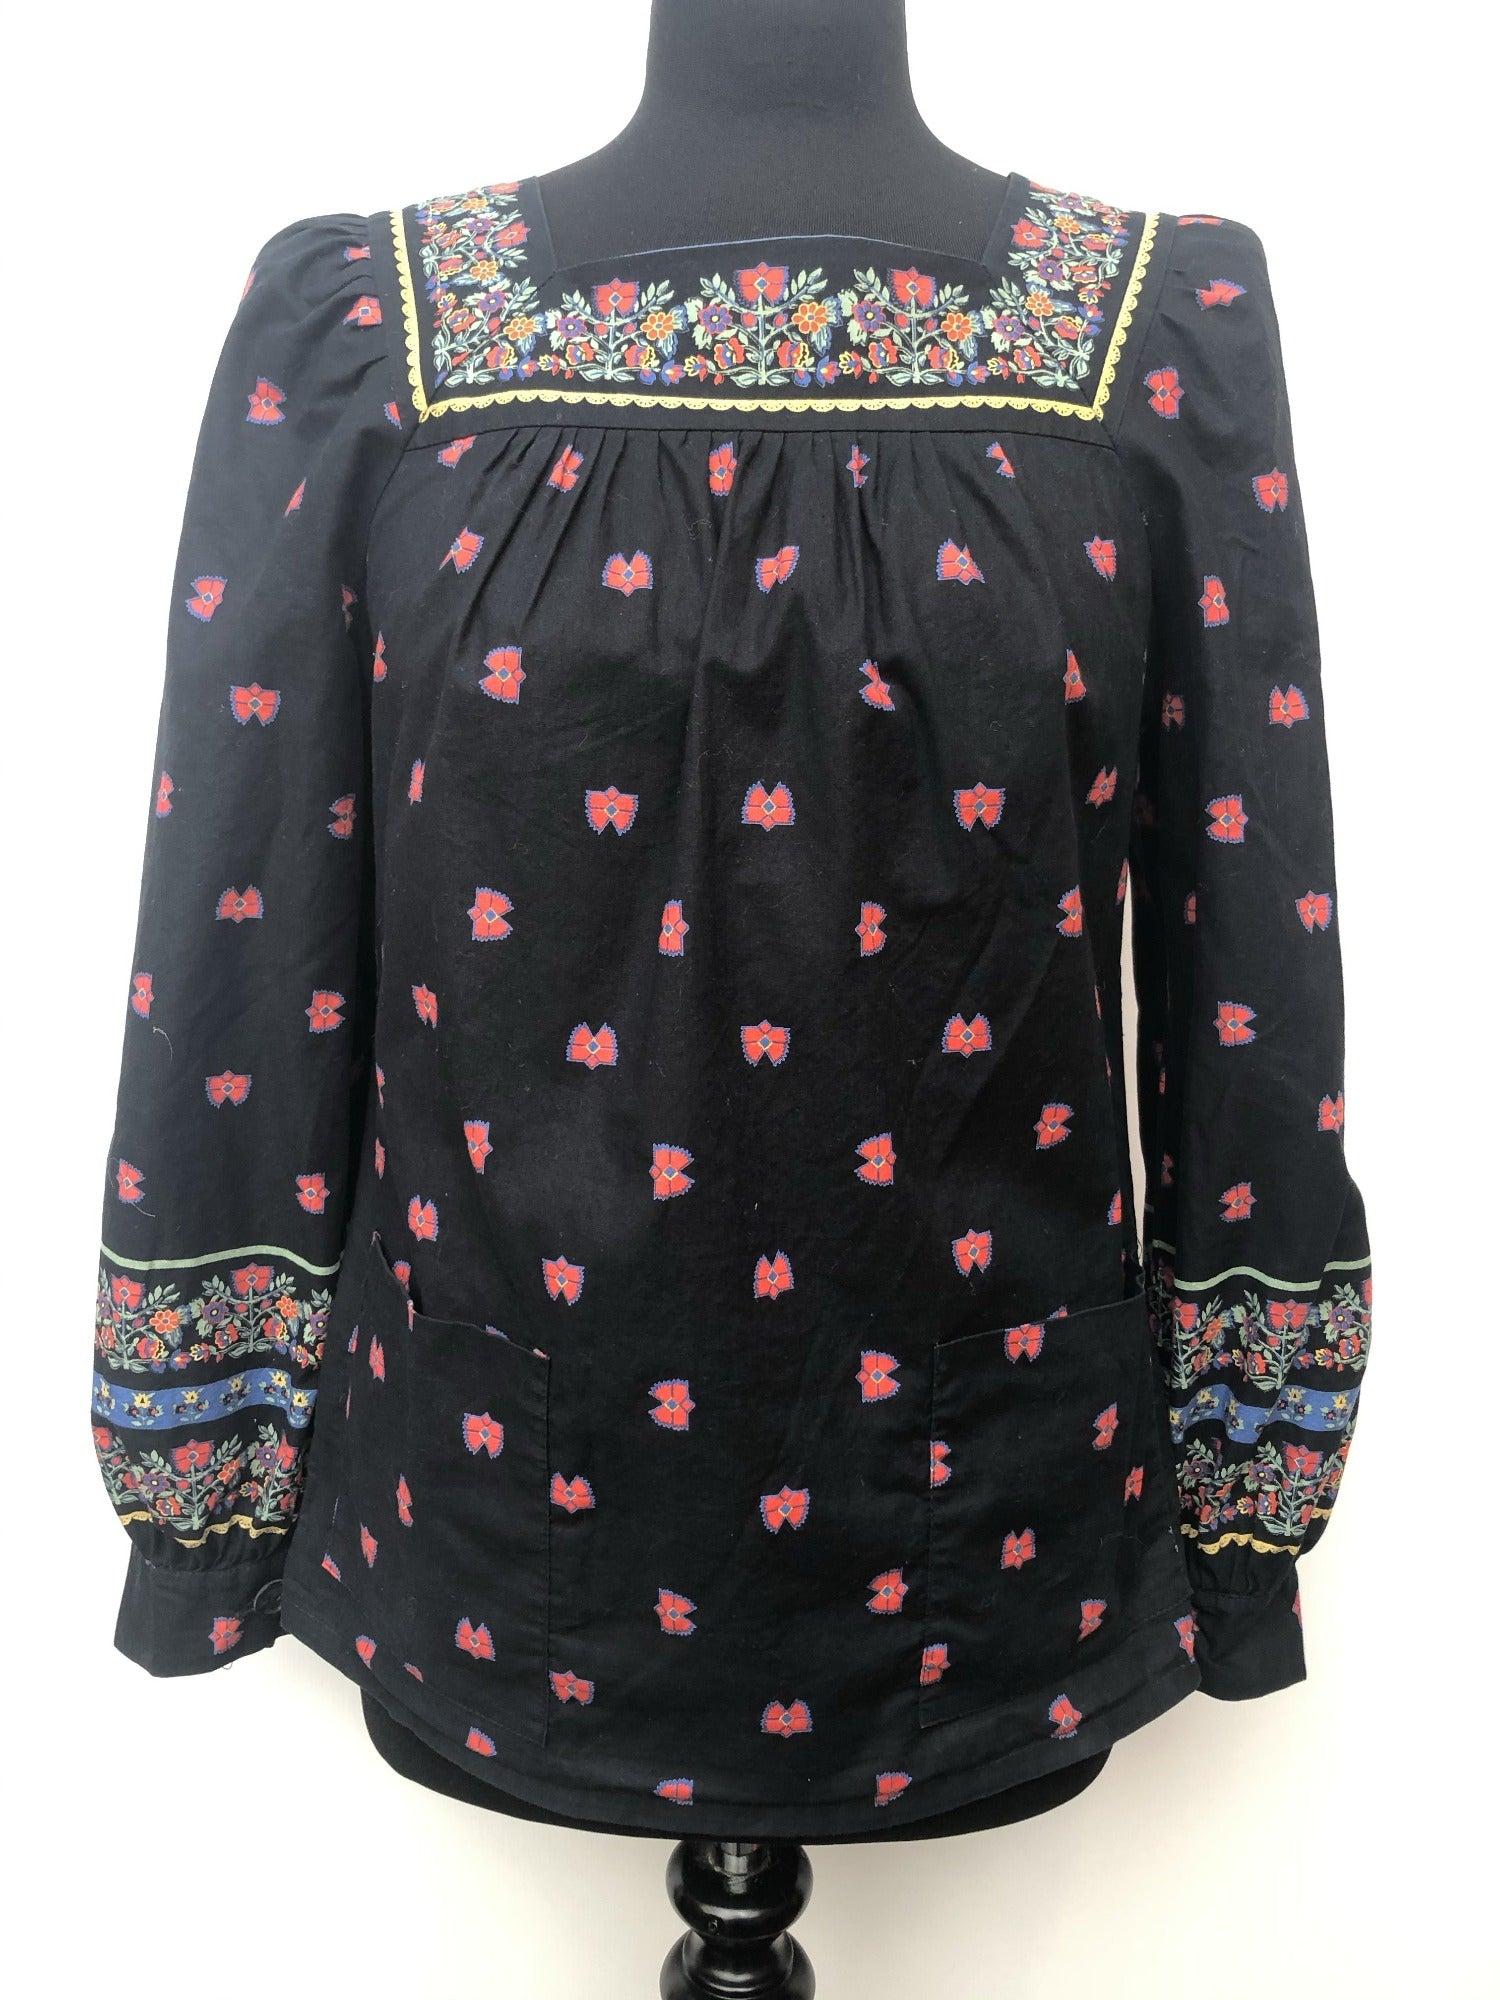 womens  vintage  tunic top  tunic  tops  square neck  multi  mod  Miss Miloty  floral print  floral  black  60s  1960s  10 Urban Village Vintage